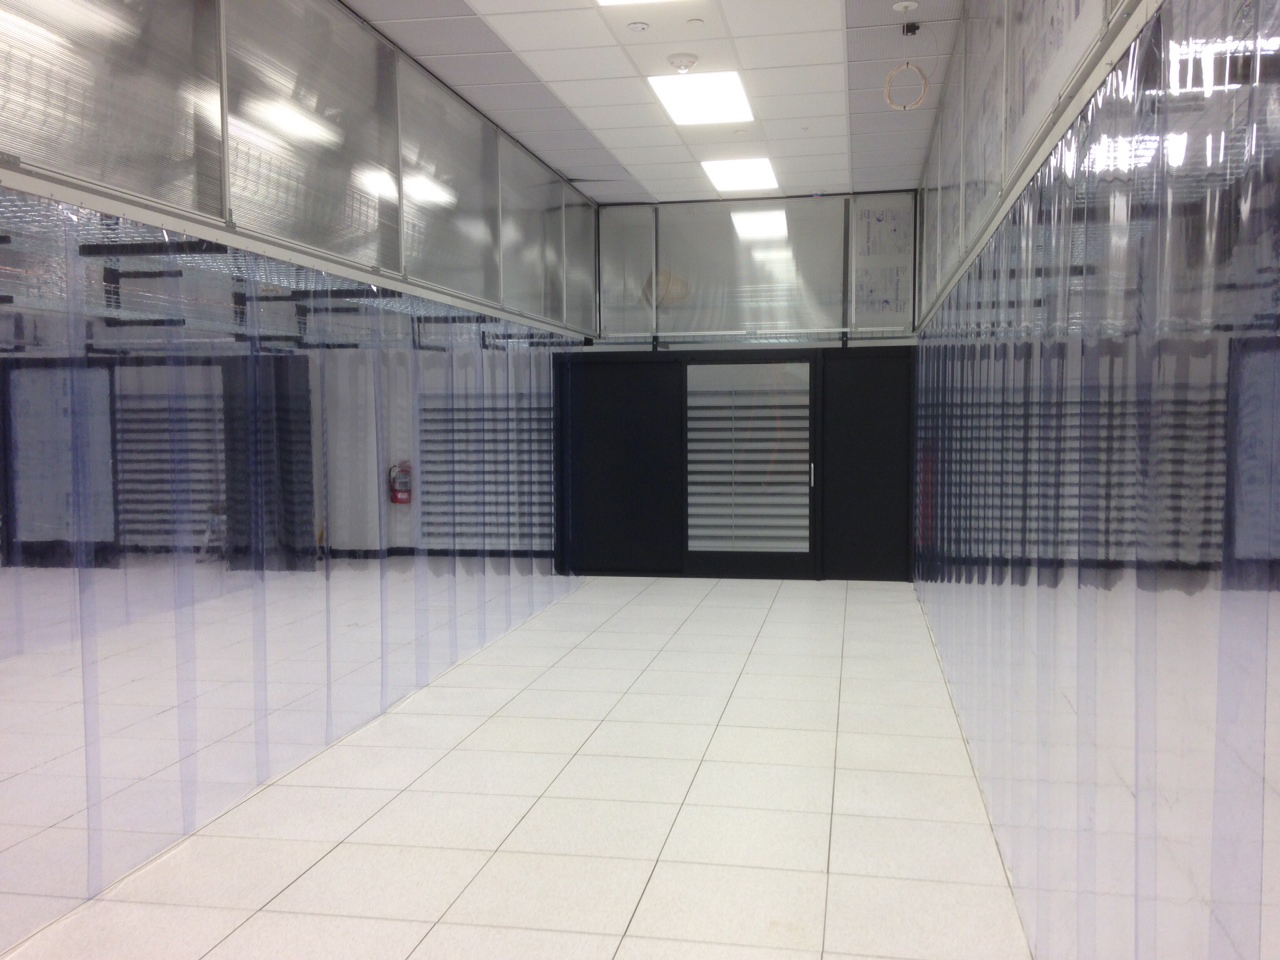 Overlapping Strip Curtains For Aisle Contaiment In Data Centers